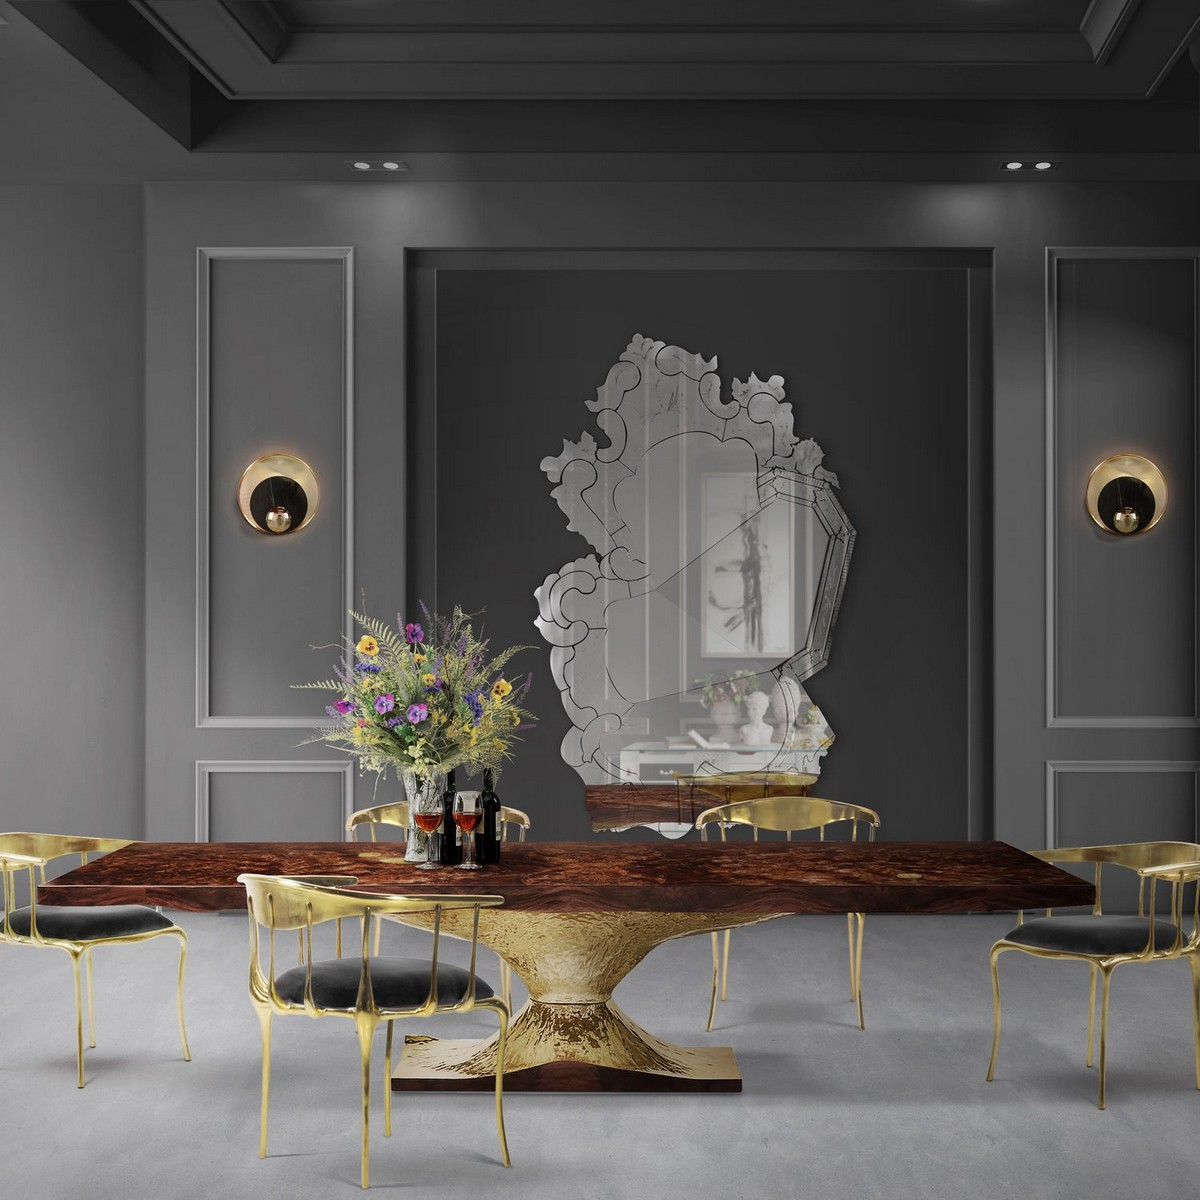 Curated Design: Contemporary Dining Room Ambiances contemporary dining room Curated Design: Contemporary Dining Room Ambiances 3 5